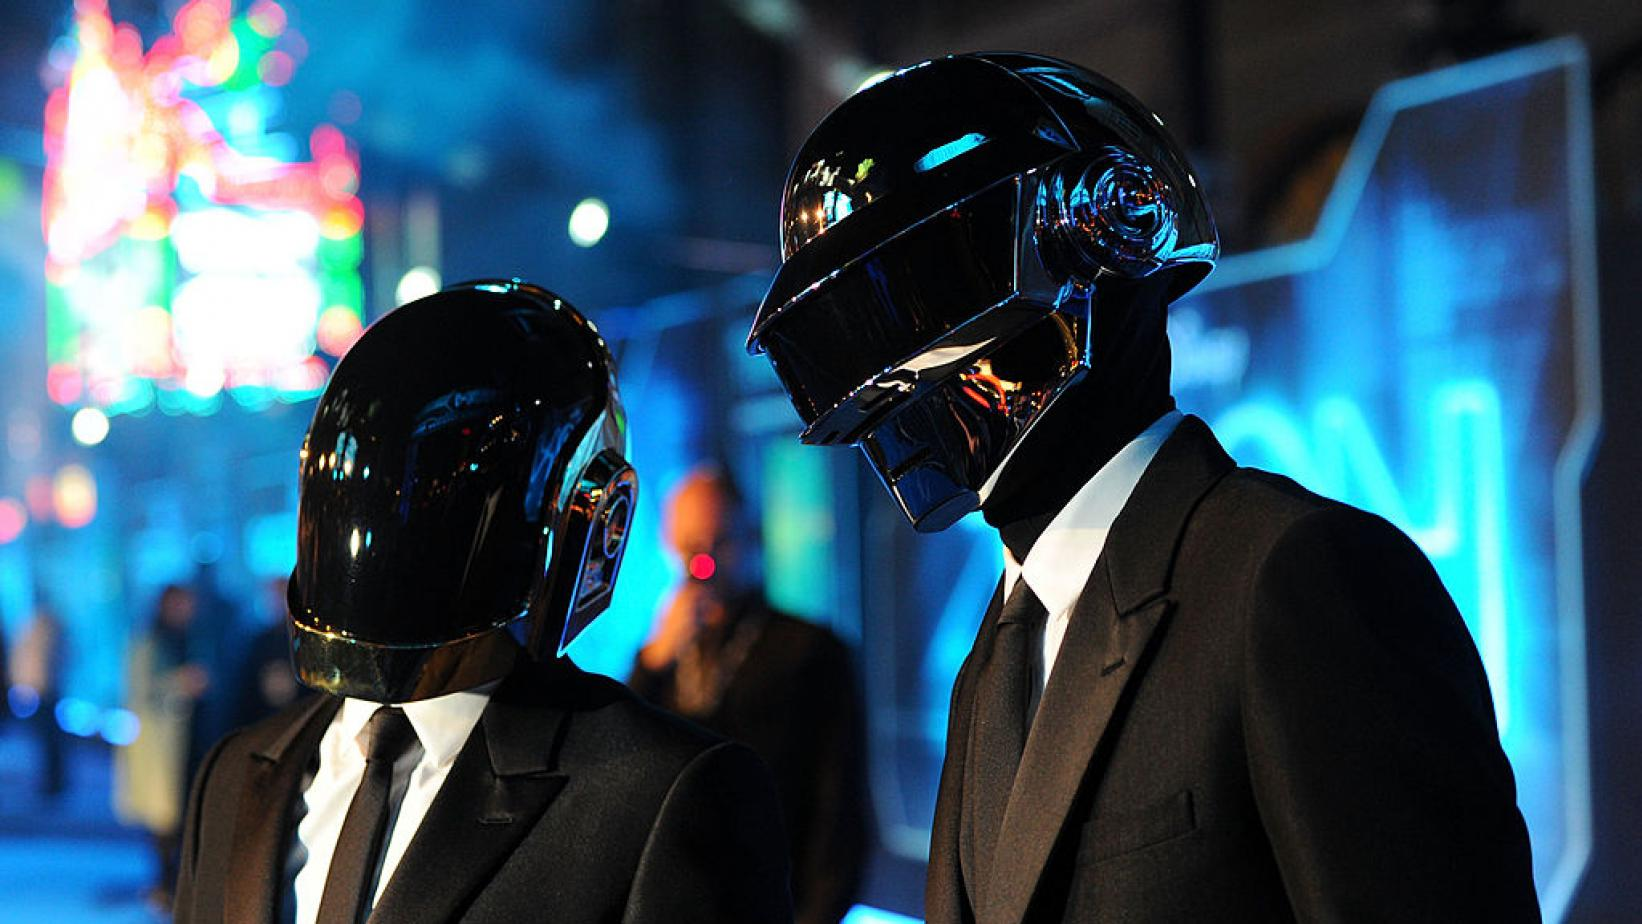 Daft Punk at the world premiere of 'TRON: Legacy' in 2010